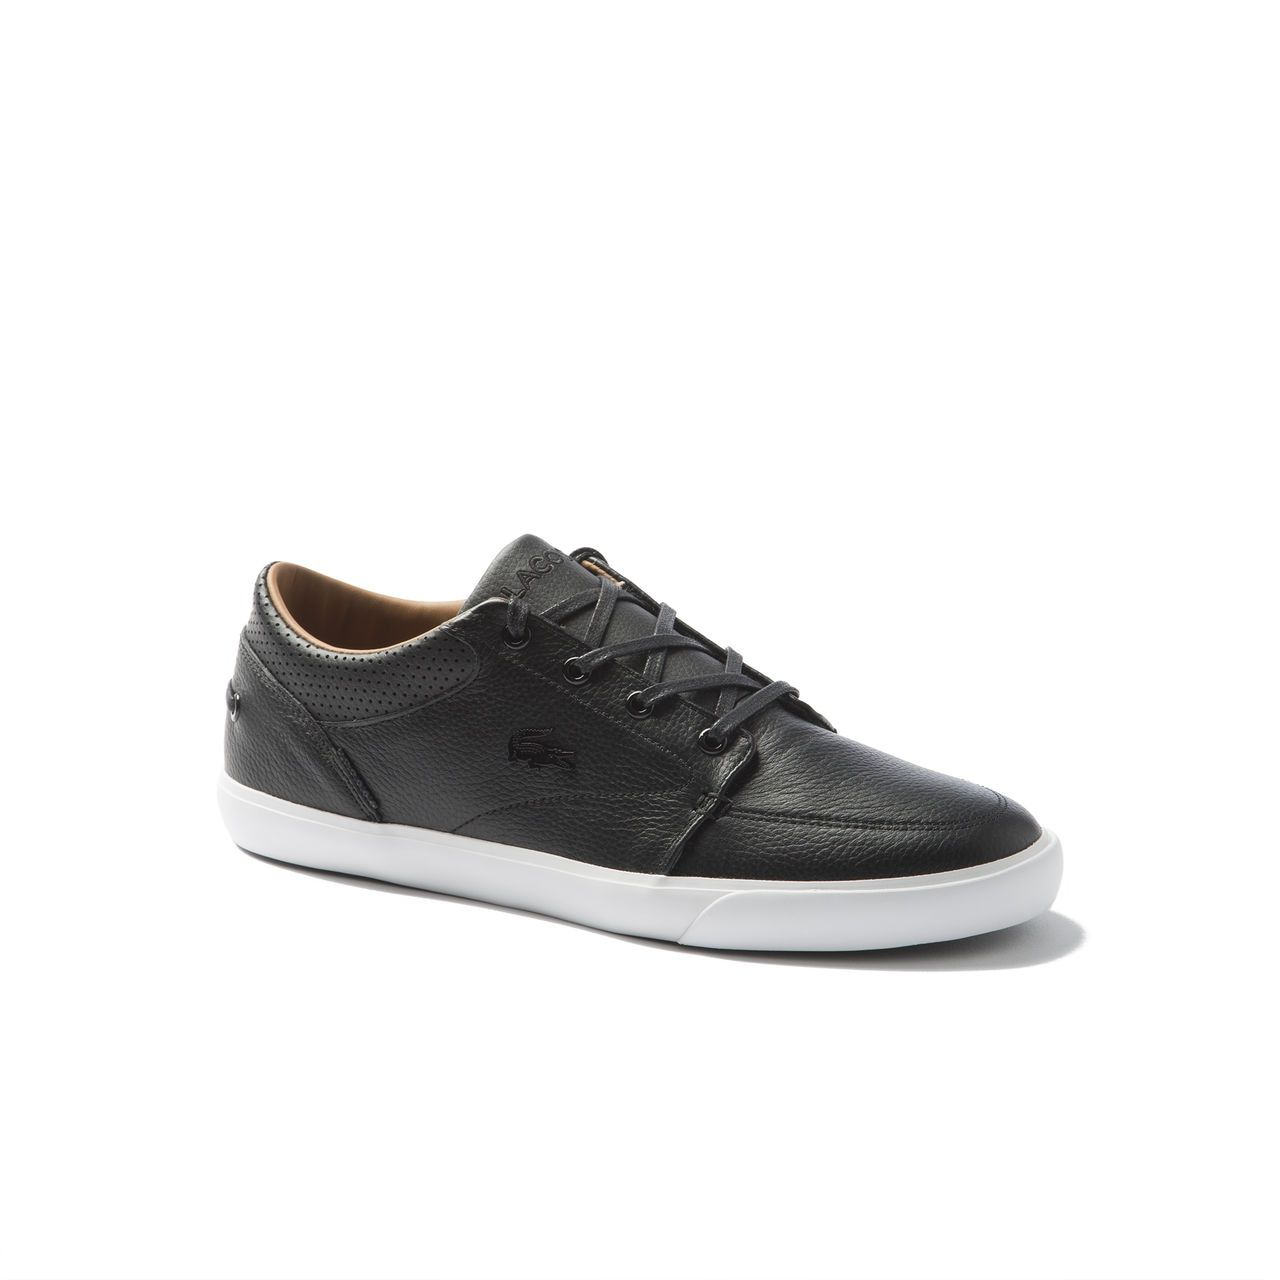 74daeafdf Men s Carnaby Evo Leather Sneakers